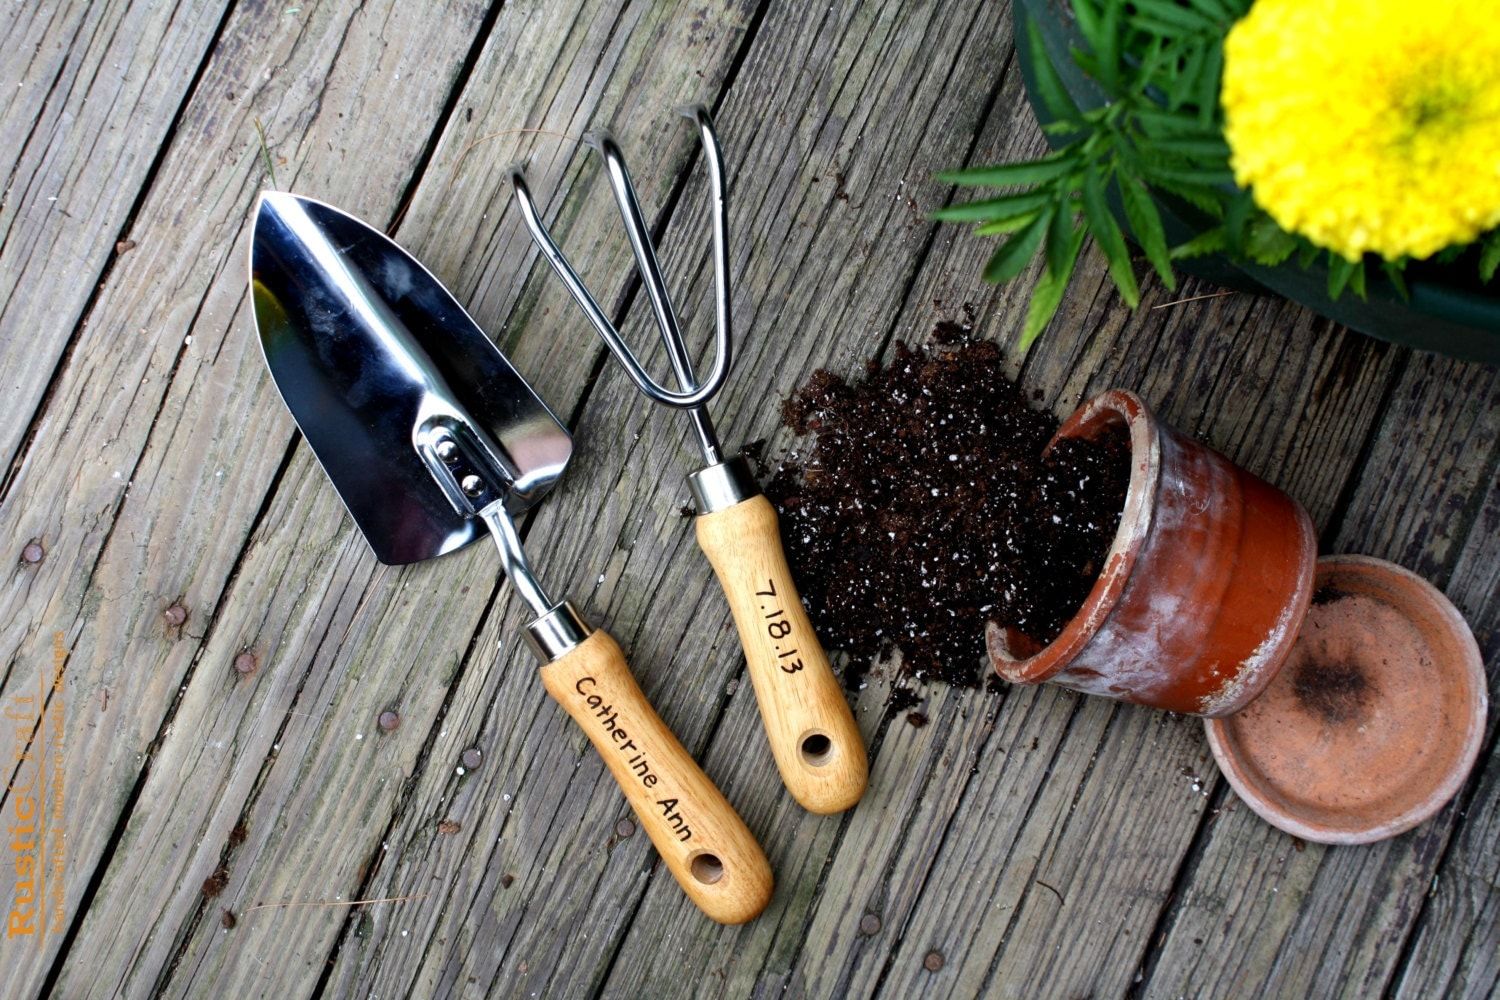 Garden Tools Personalized Garden Tool Set Hand Trowel Short Shovel